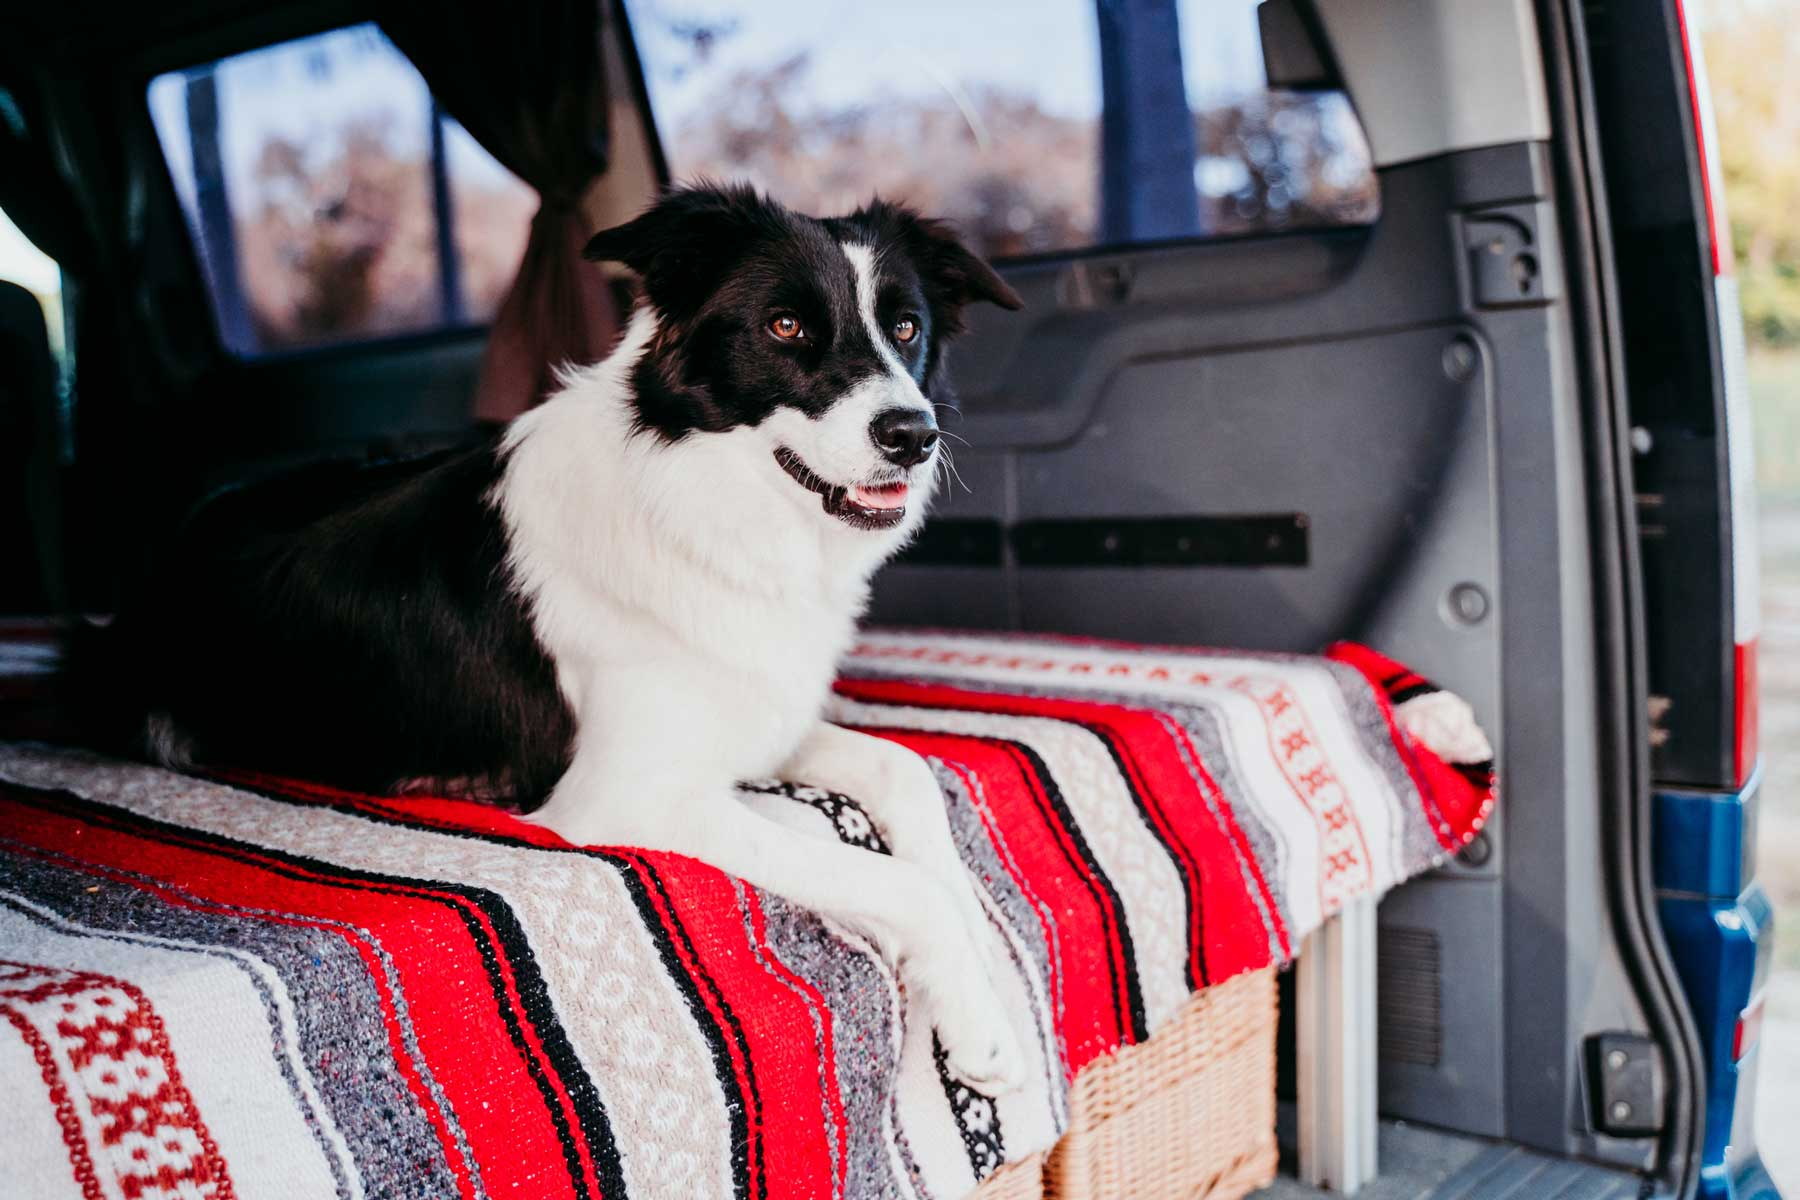 Dog in van camping outdoors